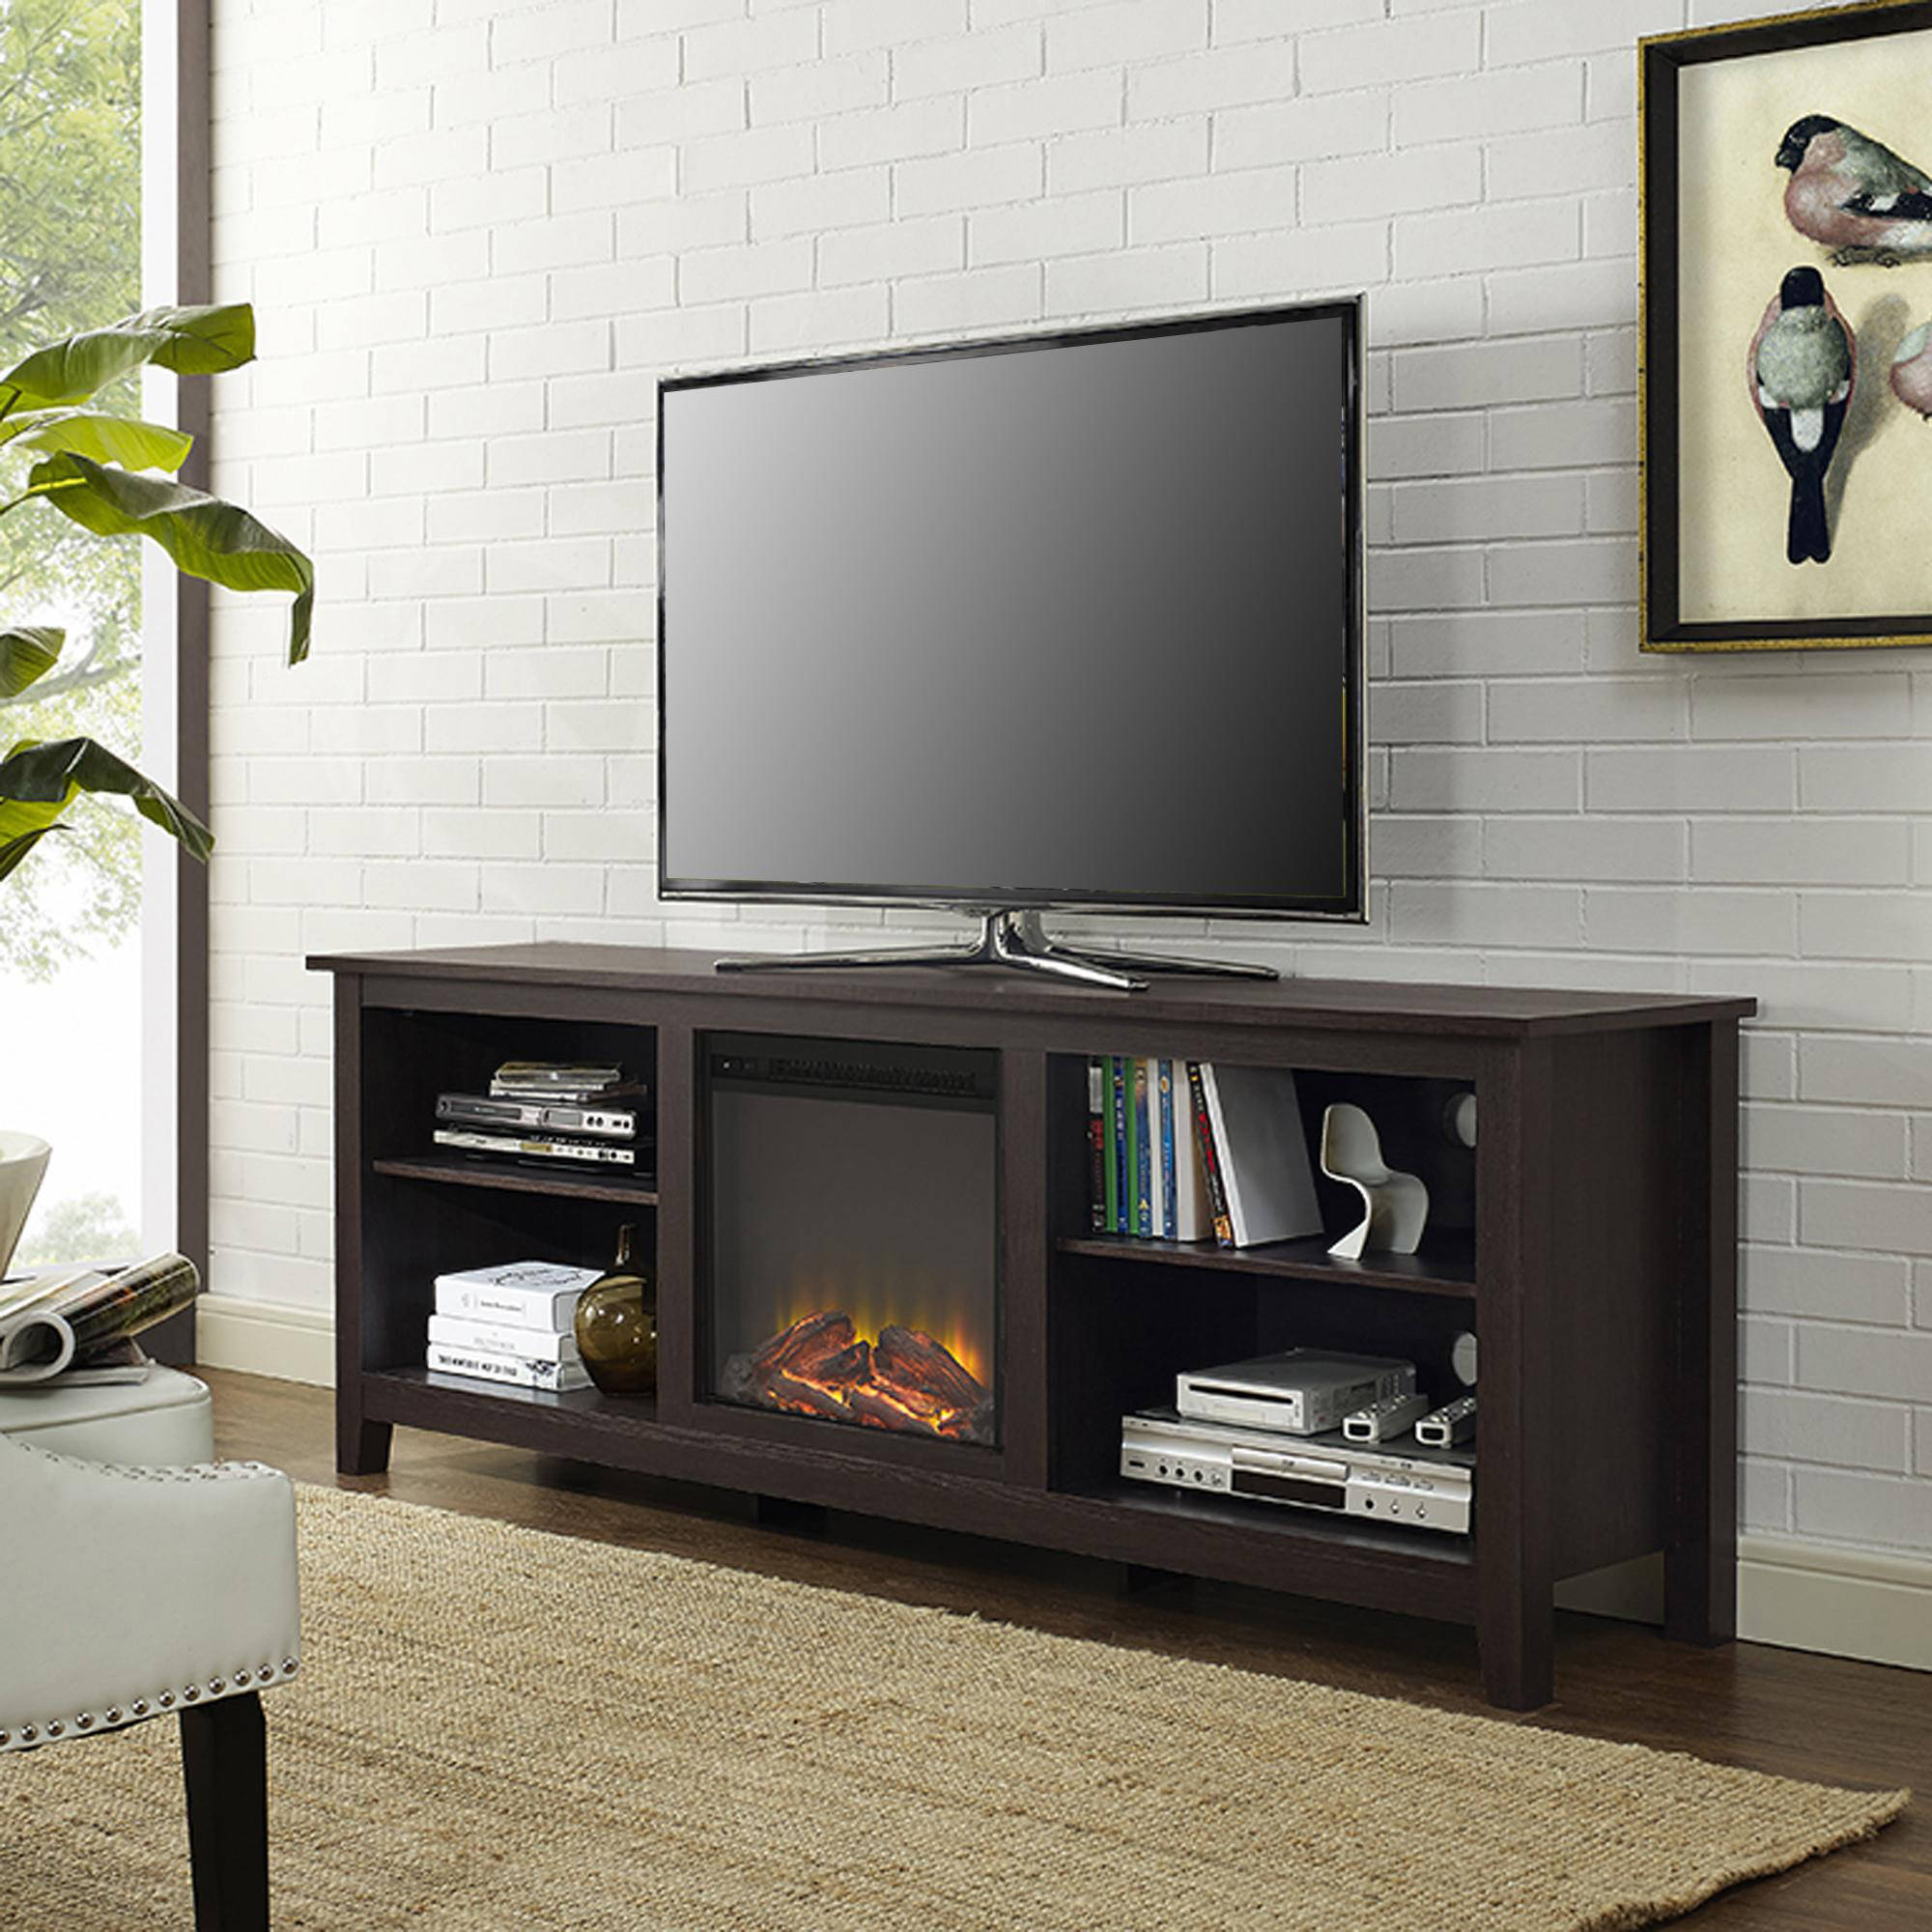 tv stands electric ebay up bhp to stand fireplace